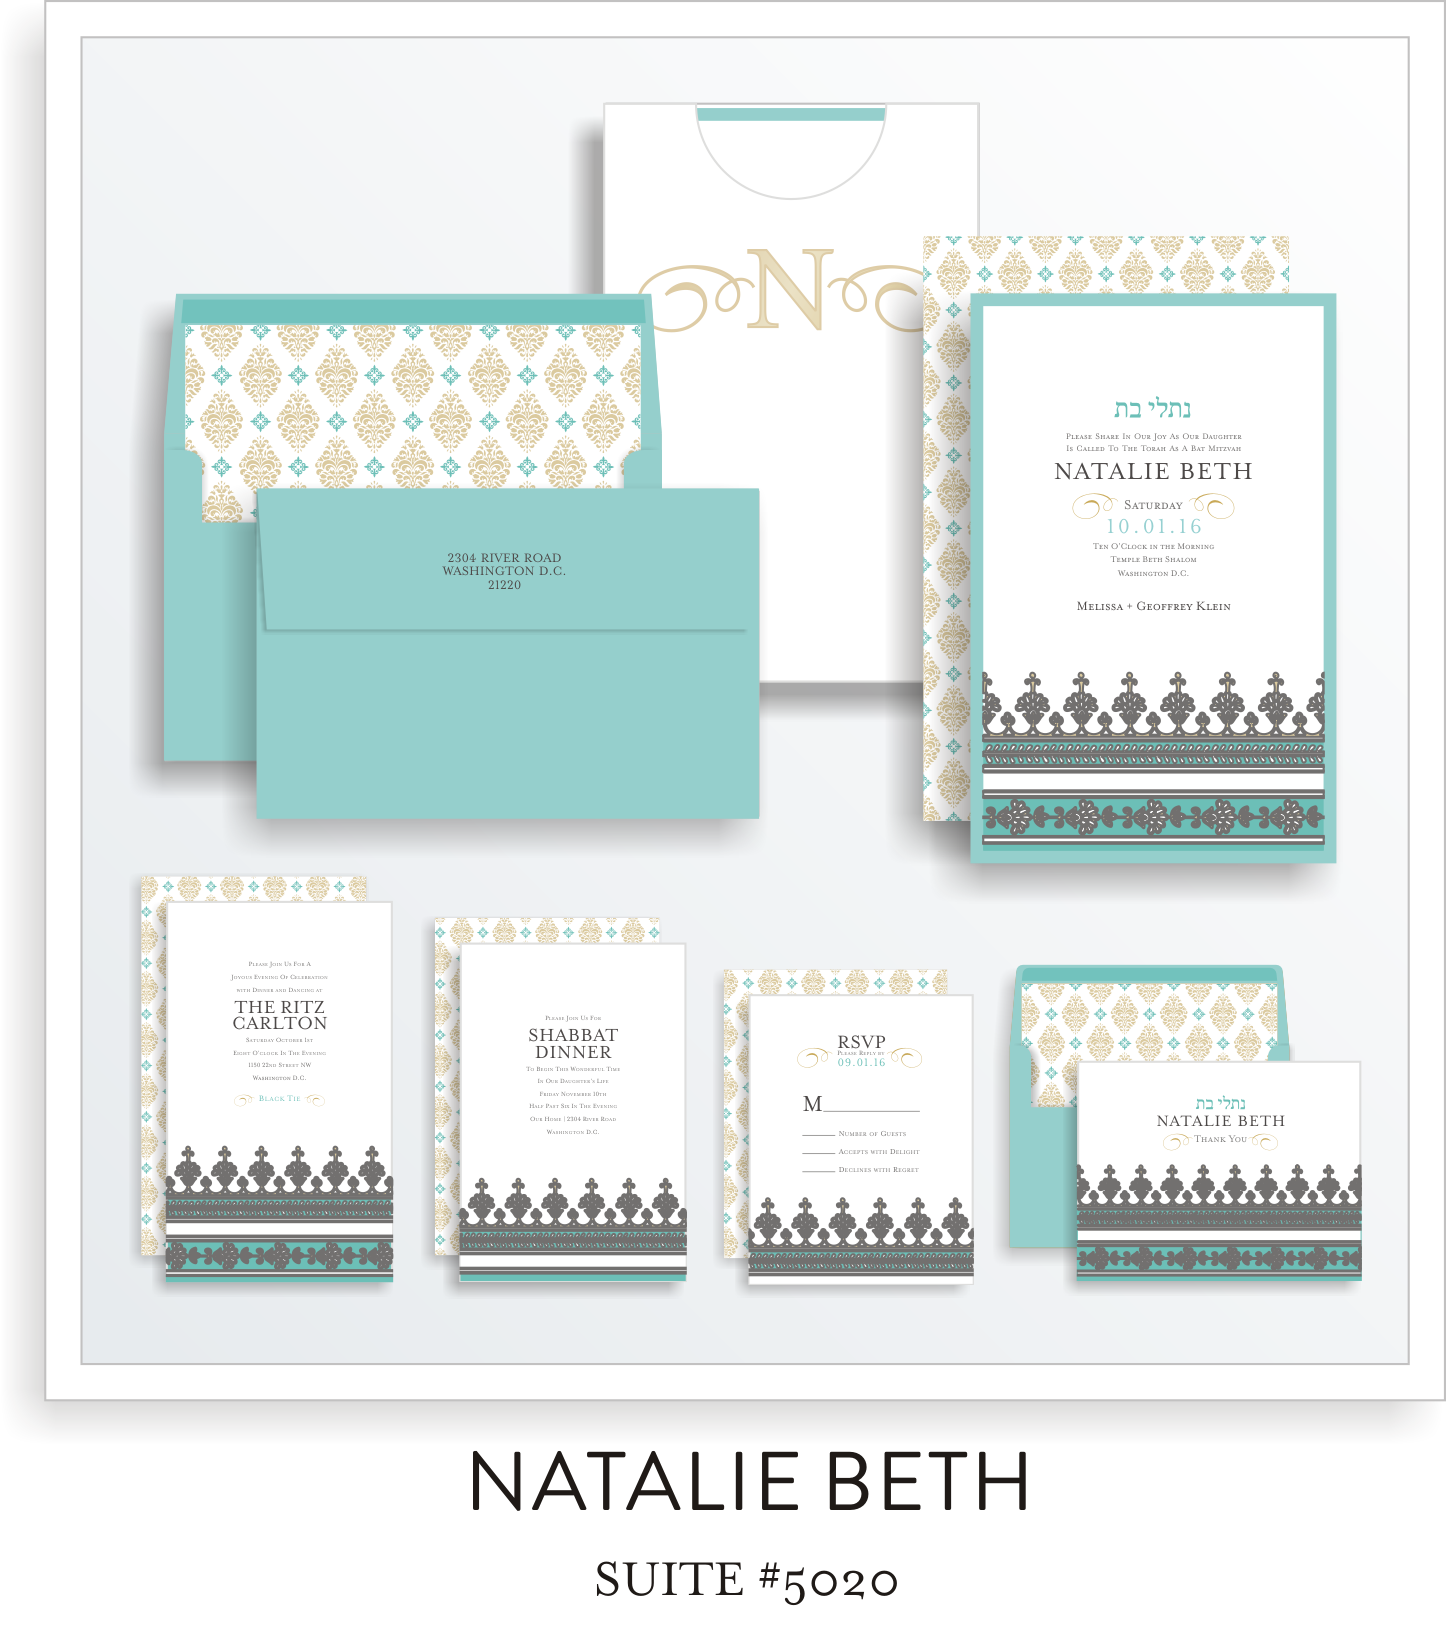 Copy of bat mitzvah invitations 5020